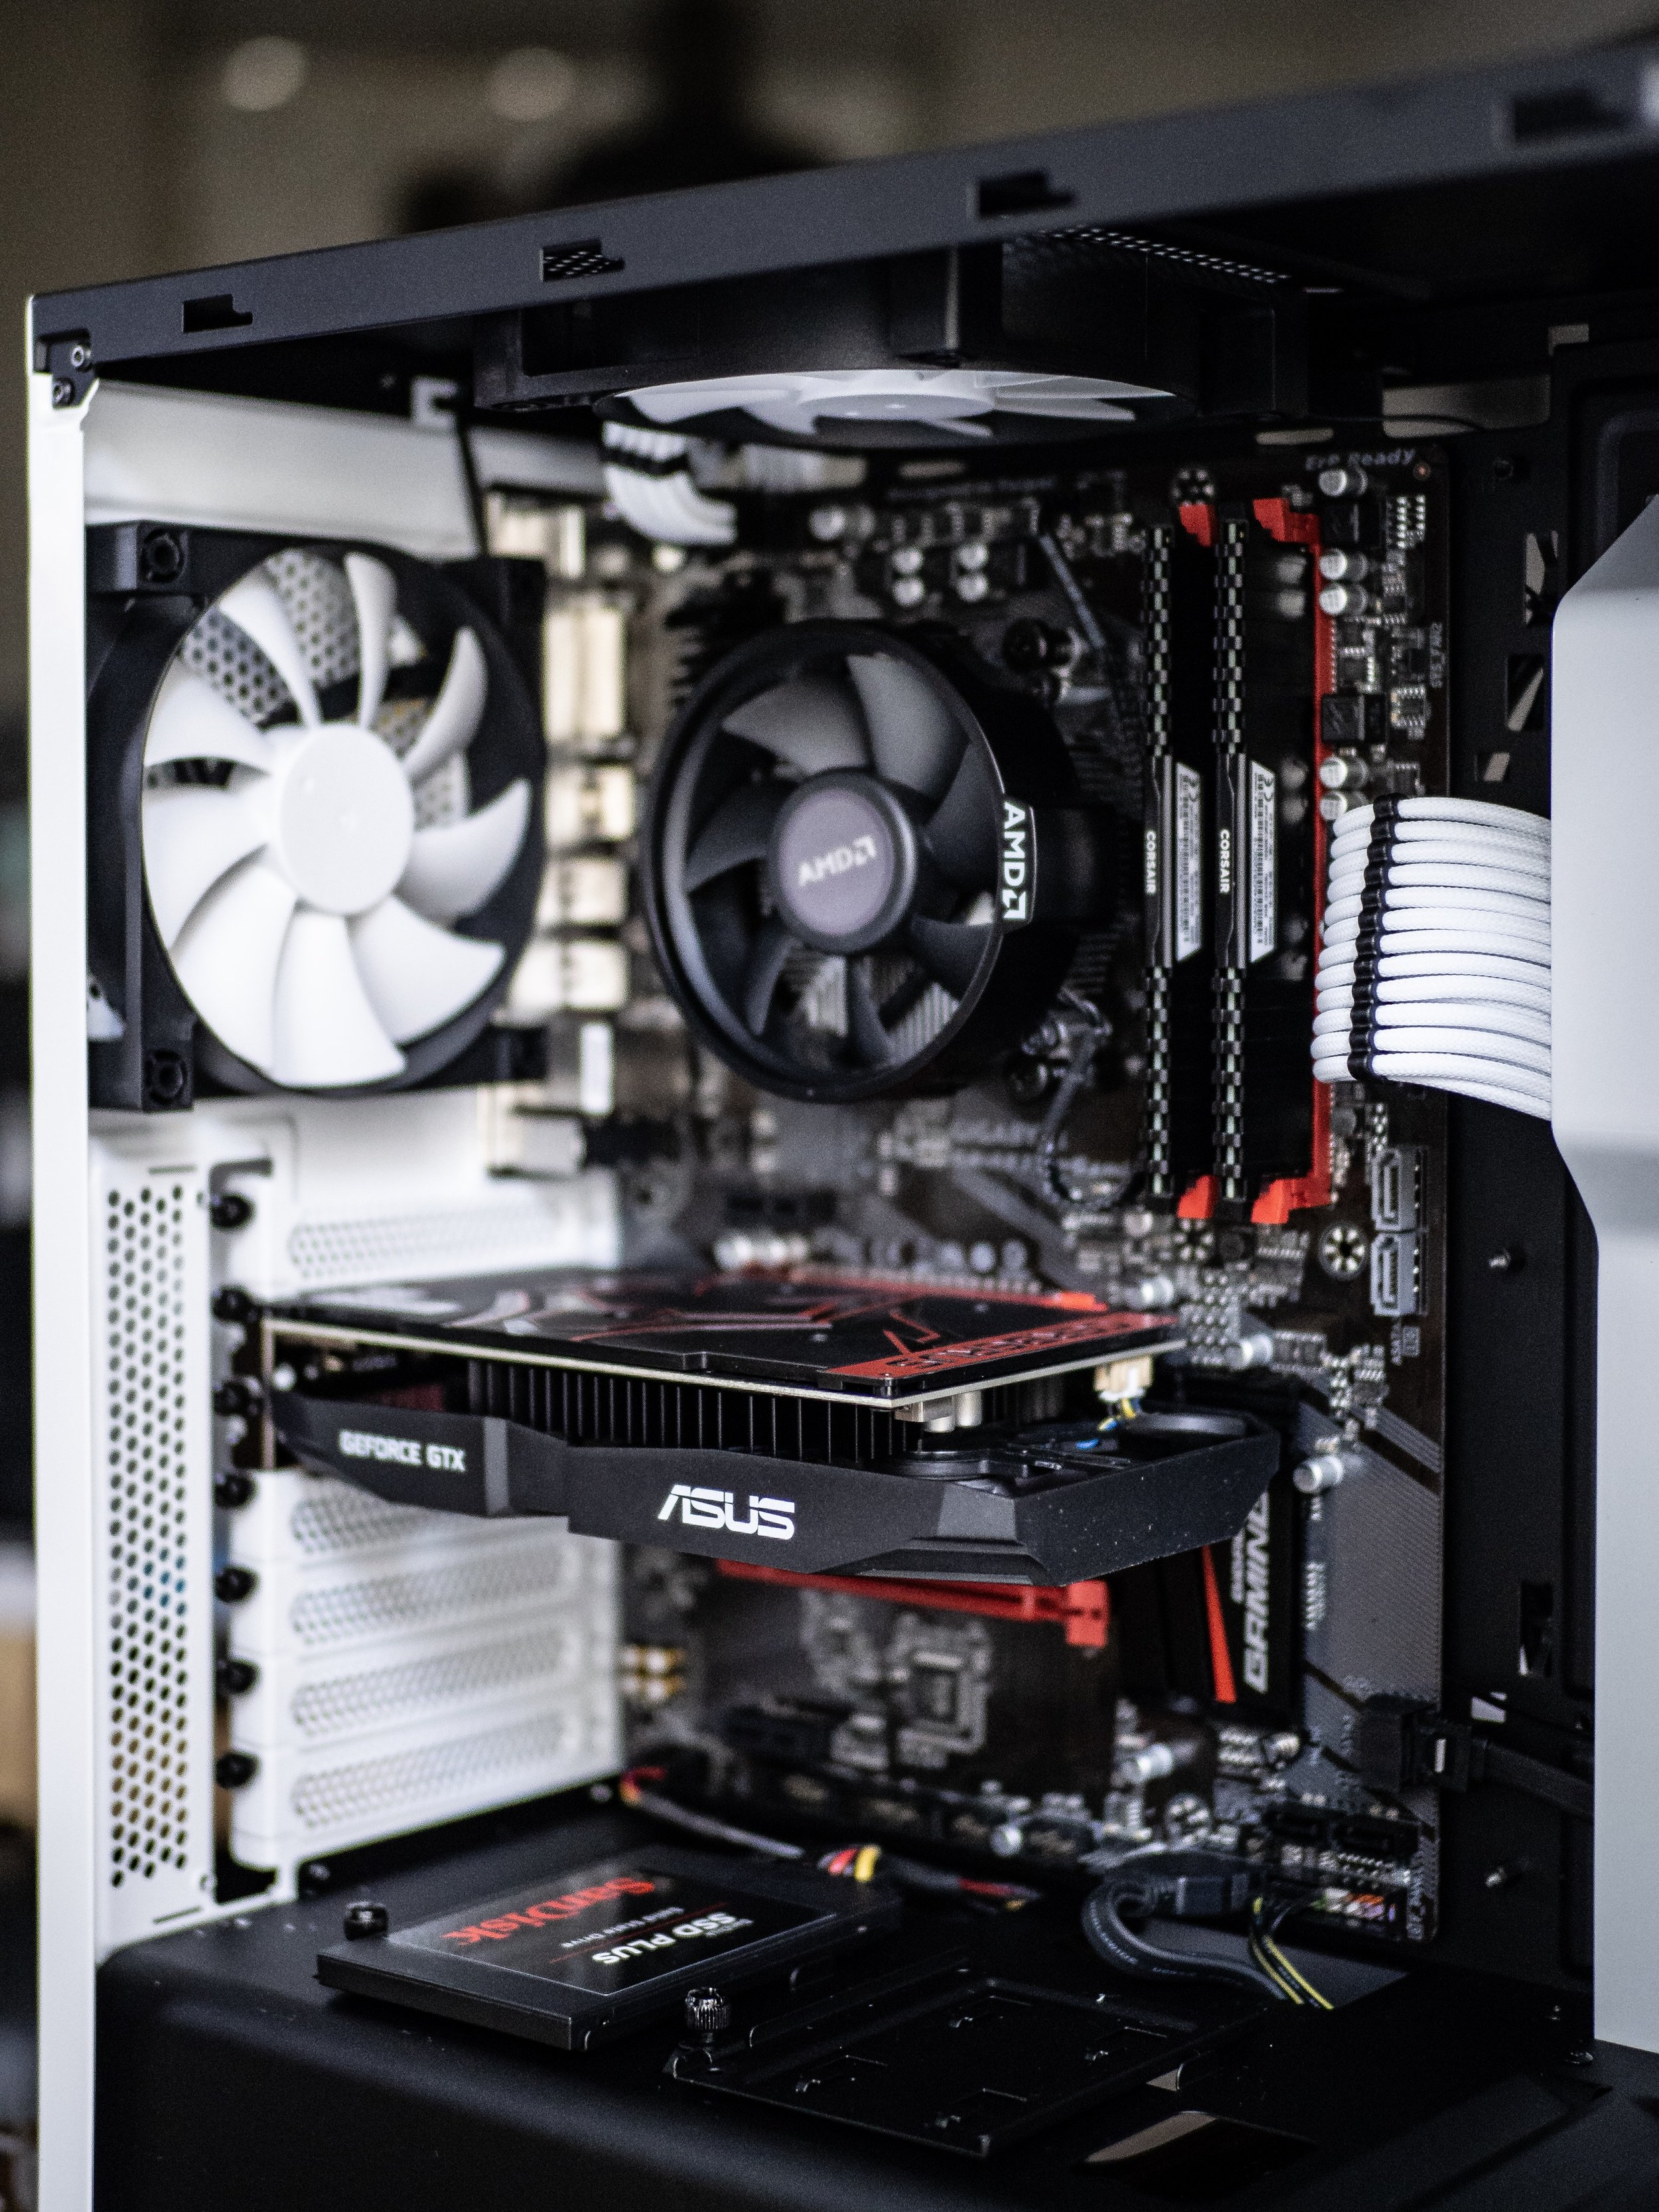 Gaming PC Build Asus Cerberus Nvidia GTX GeForce 1050Ti GPU Graphics Card Gigabyte AB350 Gaming Motherboard NZXT White Case Sandisk SSD Solid State Drive Corsair Vengeance DDR4 RAM Memory